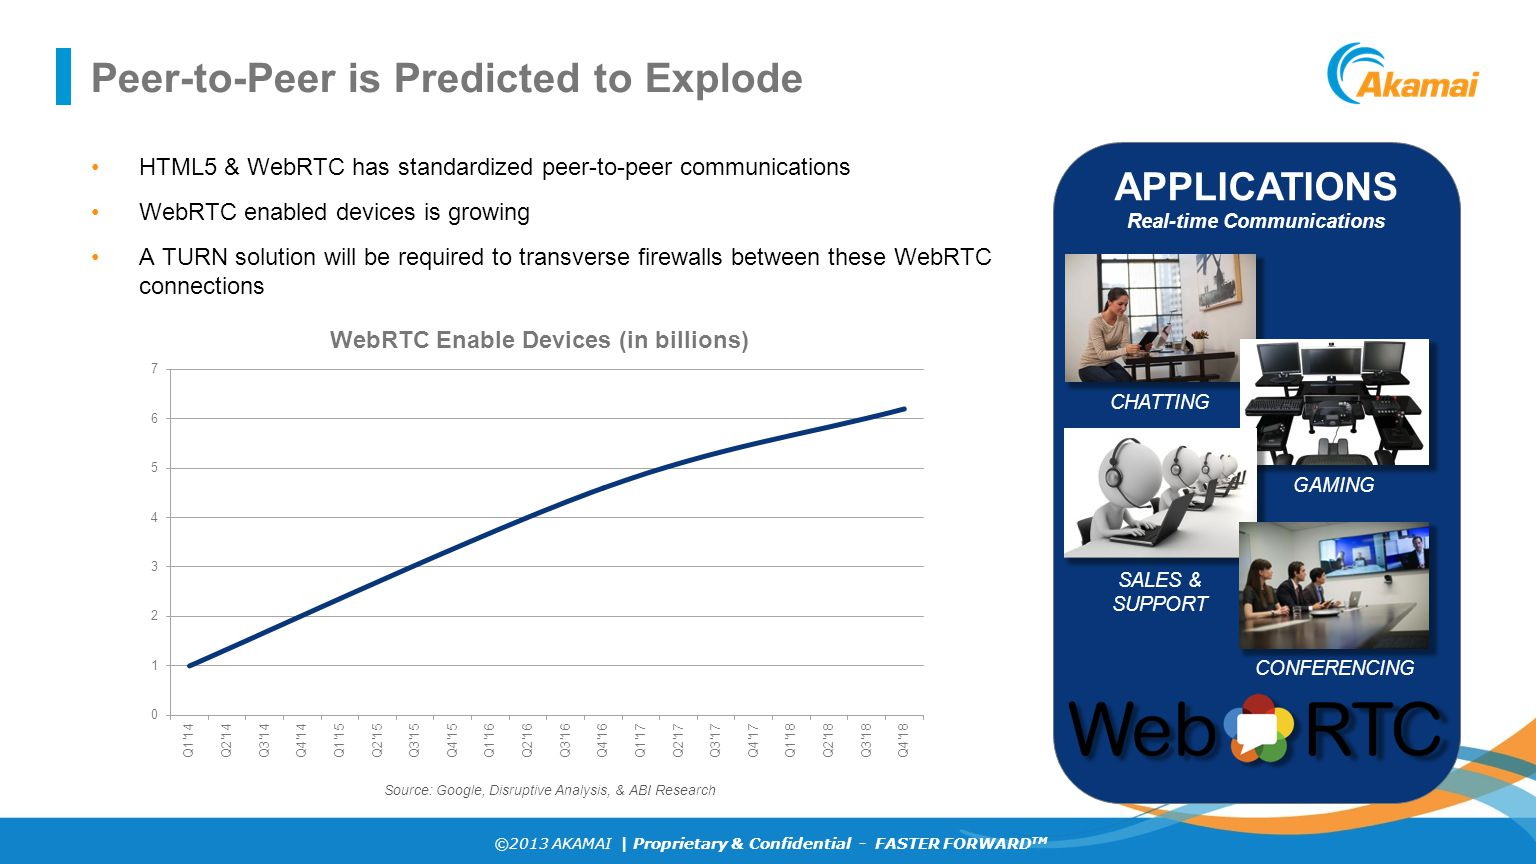 ©2013 AKAMAI | Proprietary & Confidential - FASTER FORWARD TM Peer-to-Peer is Predicted to Explode APPLICATIONS Real-time Communications CHATTING GAMI